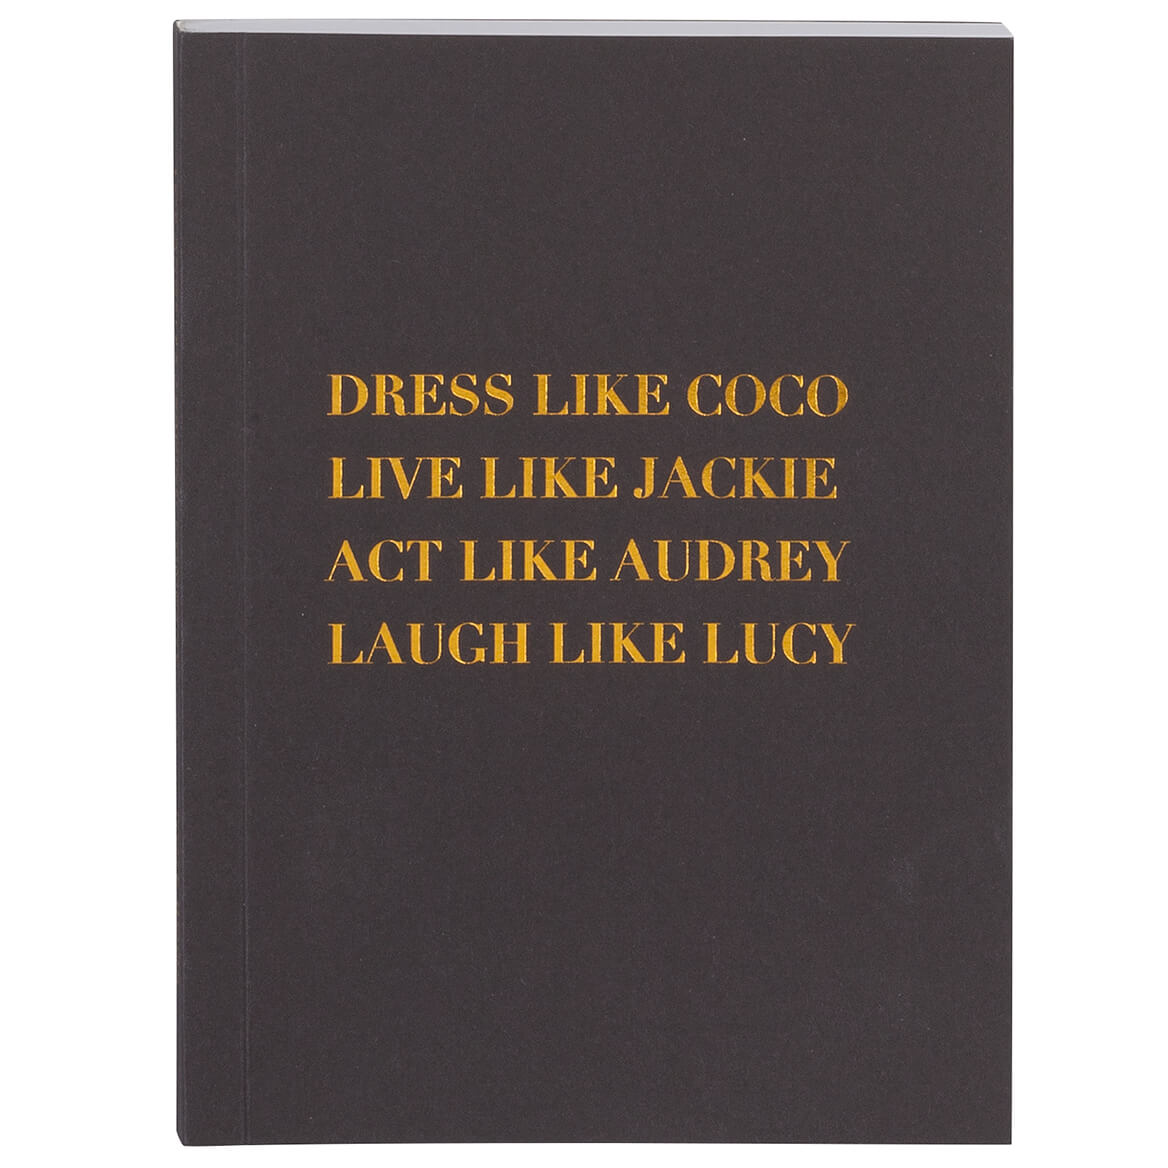 Dress Like CoCo Journal Find inspiration in icons like Coco, Jackie, Audrey and Lucy while you take a moment to jot down your thoughts and dreams in this Dress Like Coco journal. Classic gold printing on the cover. Lined pages inside for recording your ideas. Makes a thoughtful gift. Gold printing on the cover190 lined pagesPersonal diary measures 5  wide x 7  high